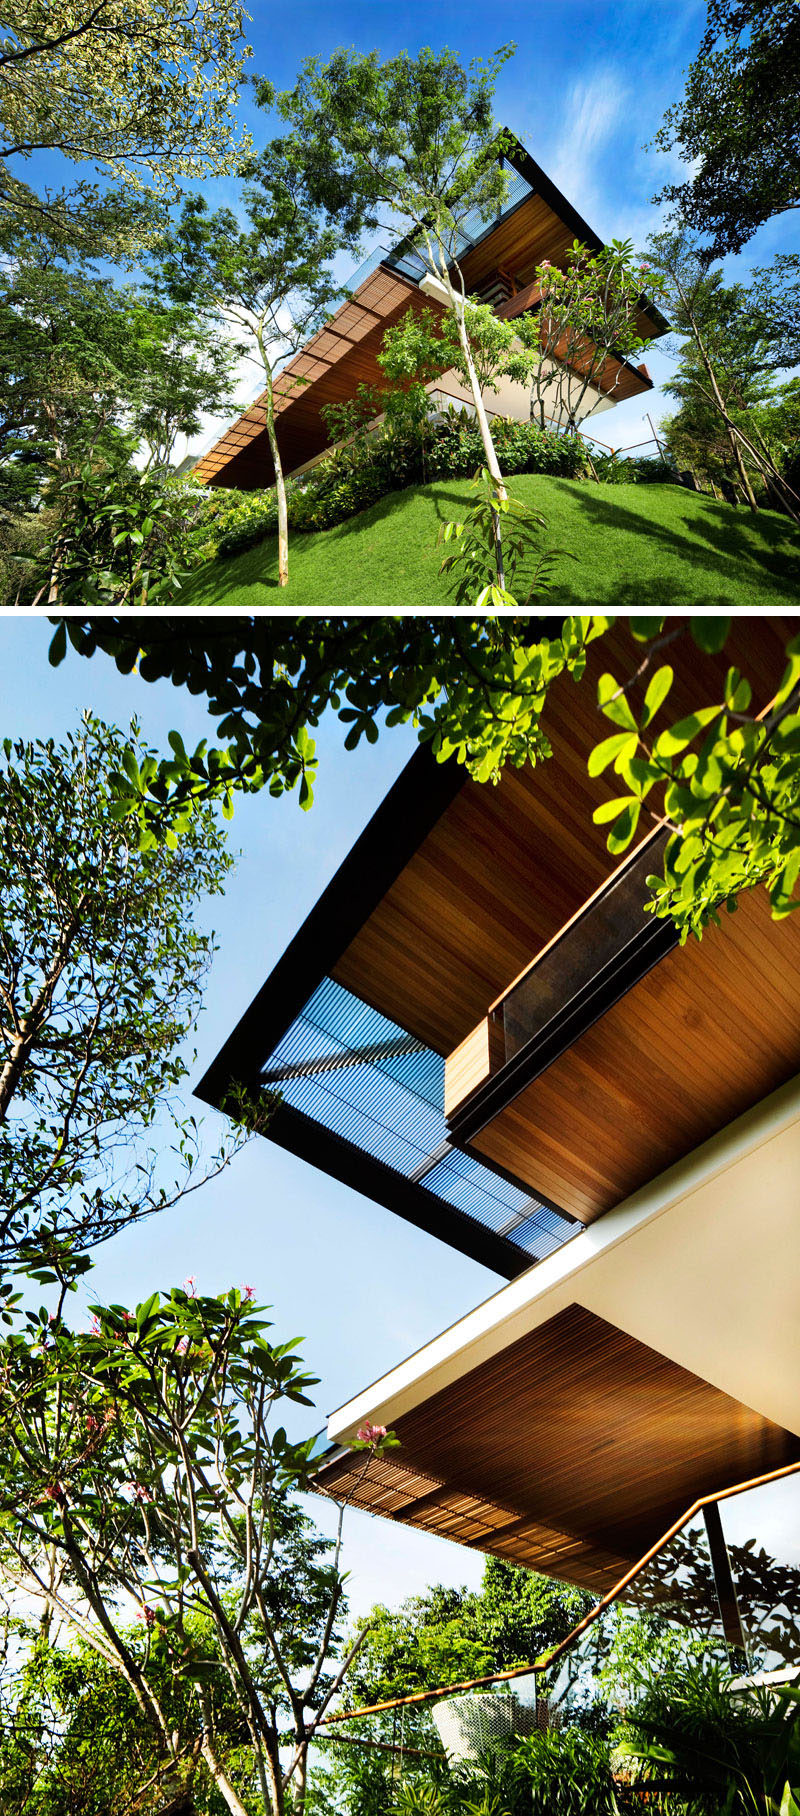 GUZ Architects has designed a modern house in Singapore, for their client who requested an exciting dynamic house that made the most of the steeply sloping site which overlooked the world heritage site of the botanic gardens. #ModernHouse #ModernArchitecture